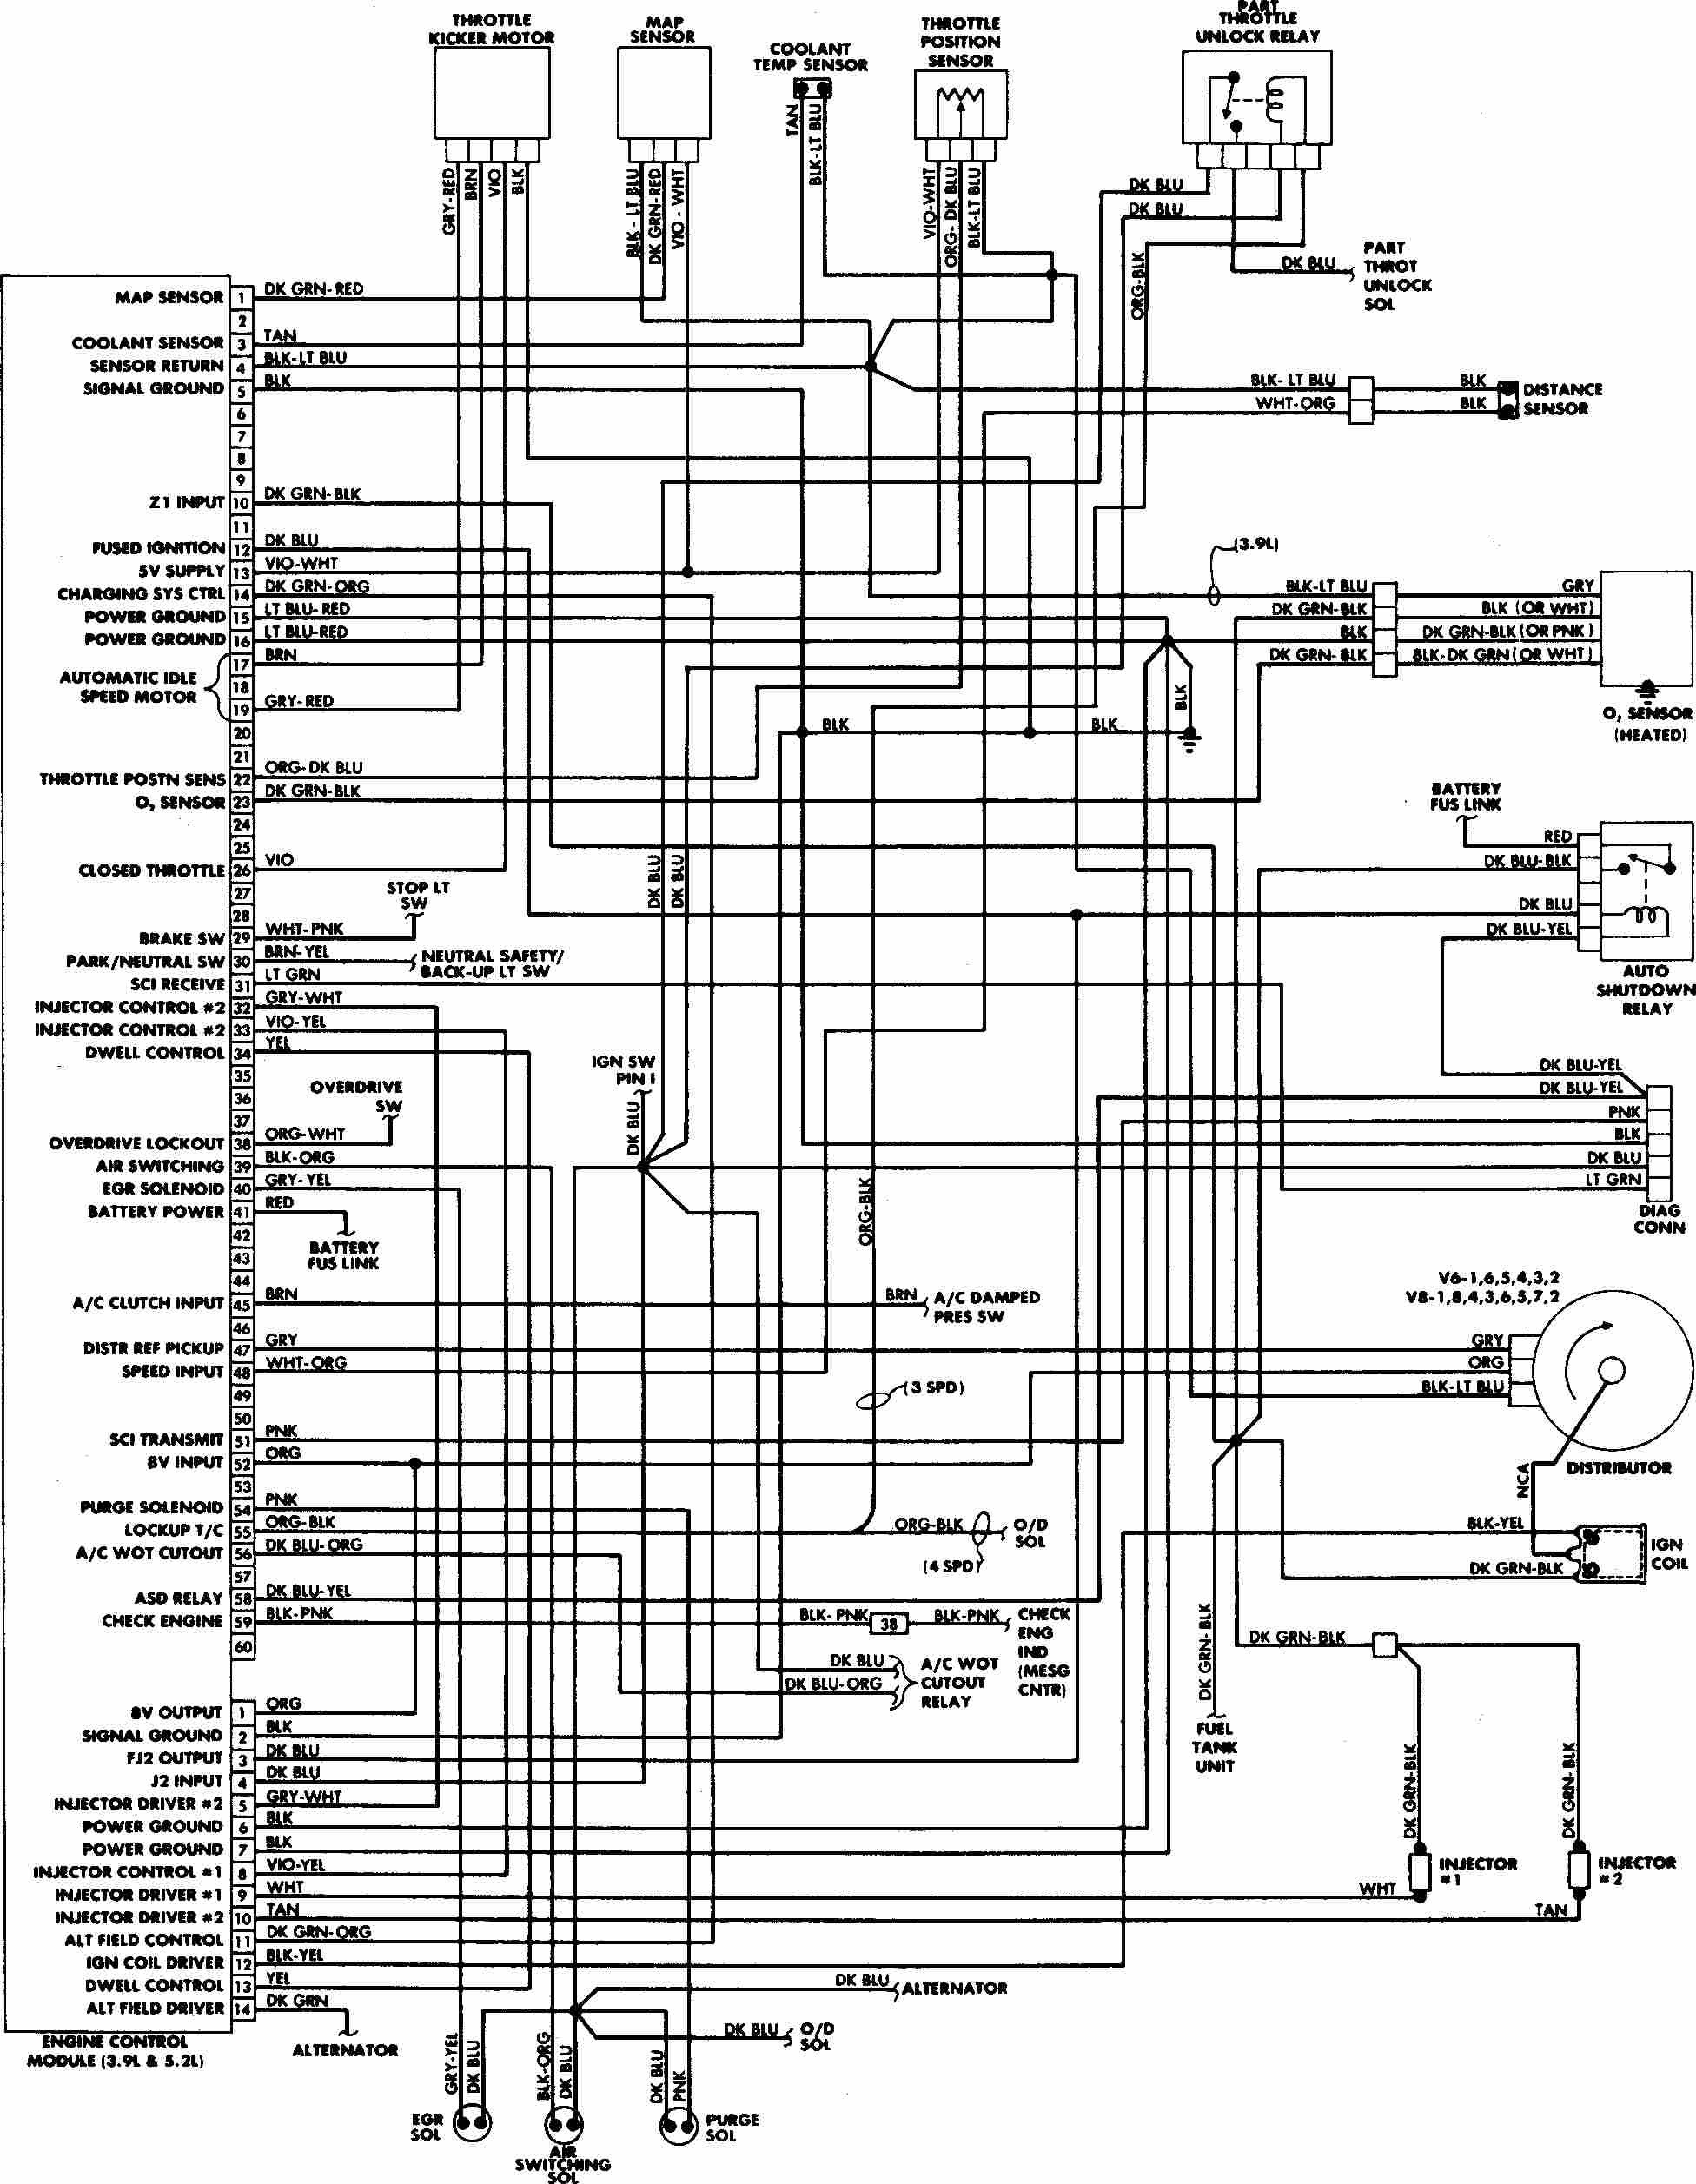 1987 Dodge Wiring Diagram - Wiring Diagram K9 on